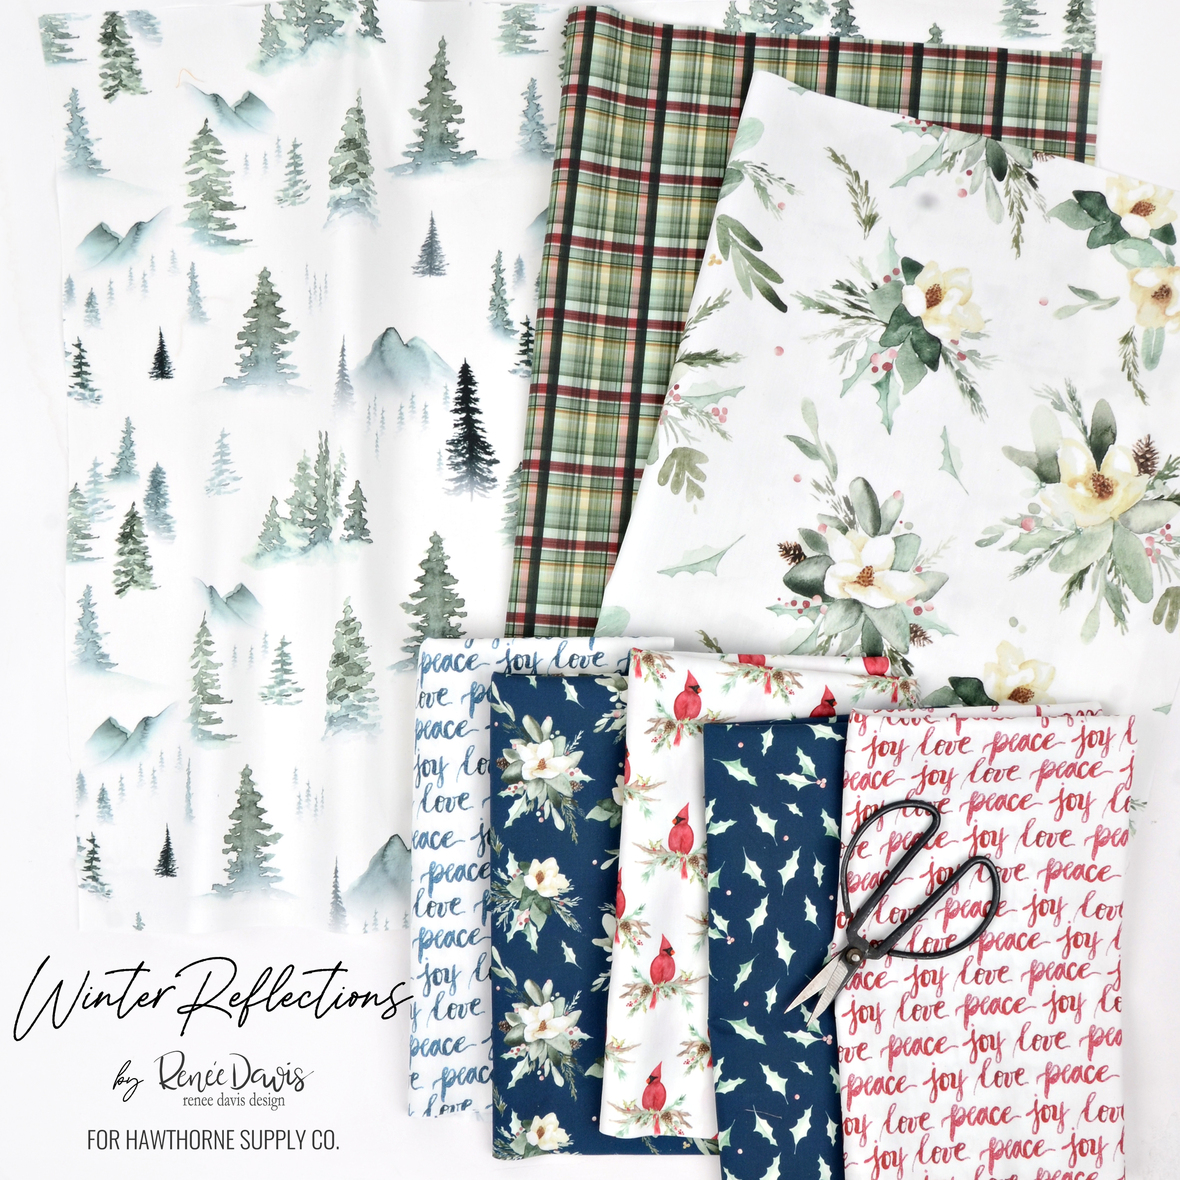 Winter Reflections Christmas Fabric from Renee Davis for Hawthorne